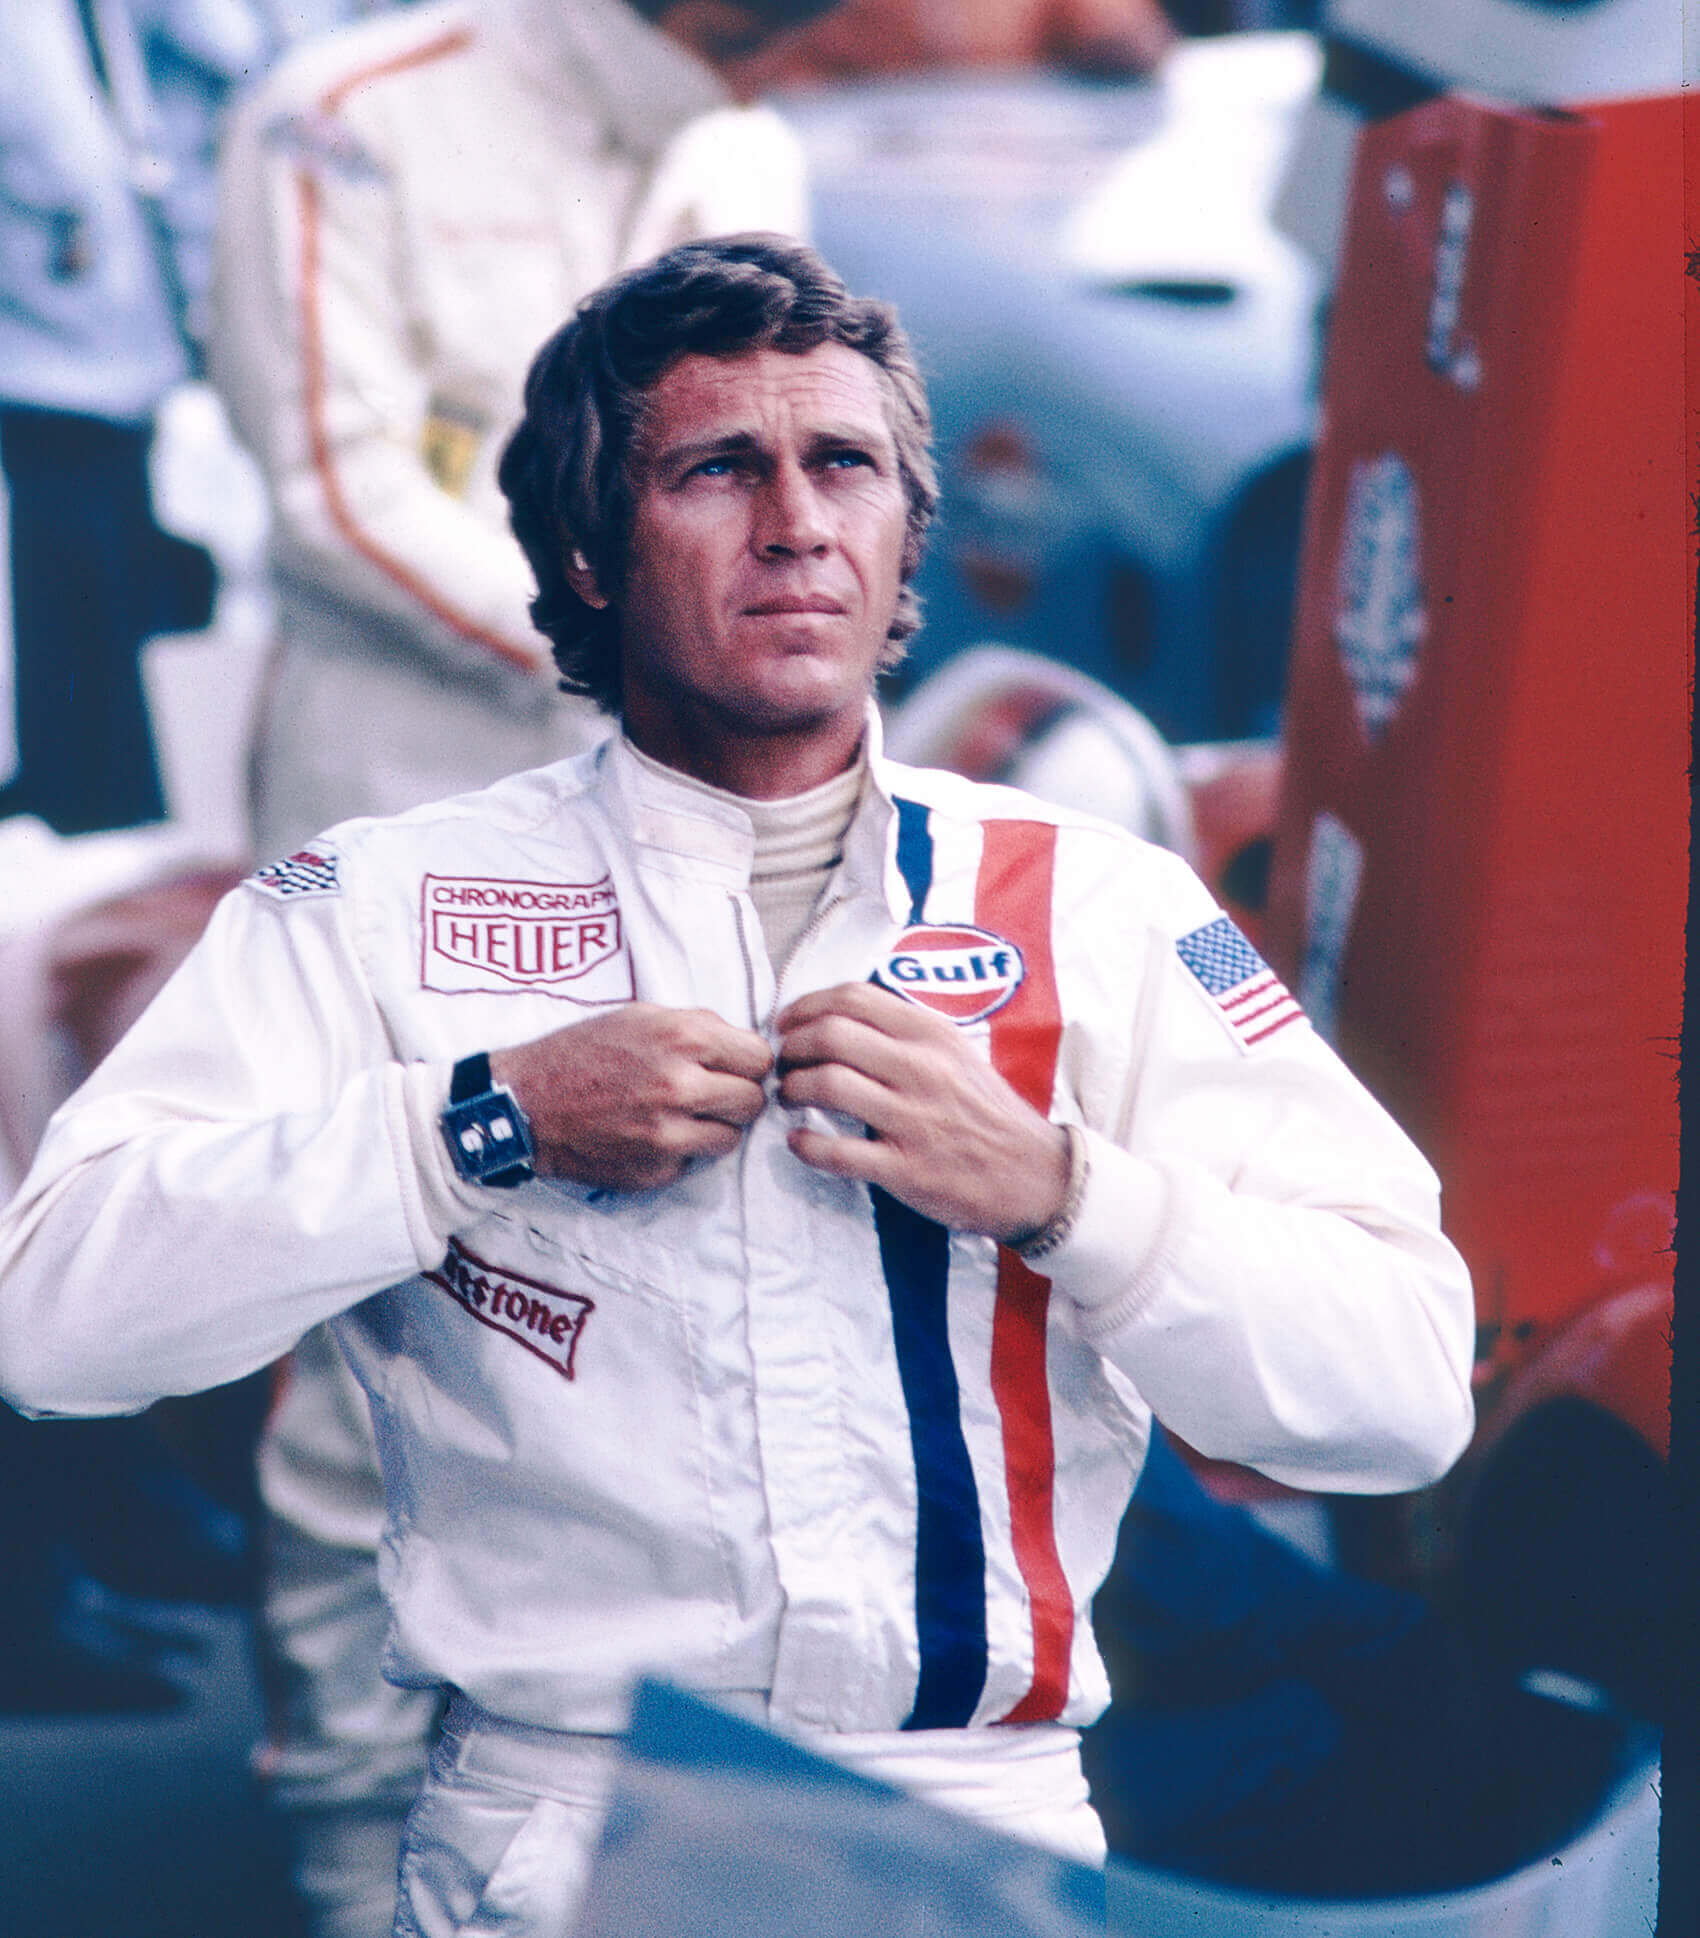 Steve McQueen wearing the Heuer Monaco ref 1133B (1971)